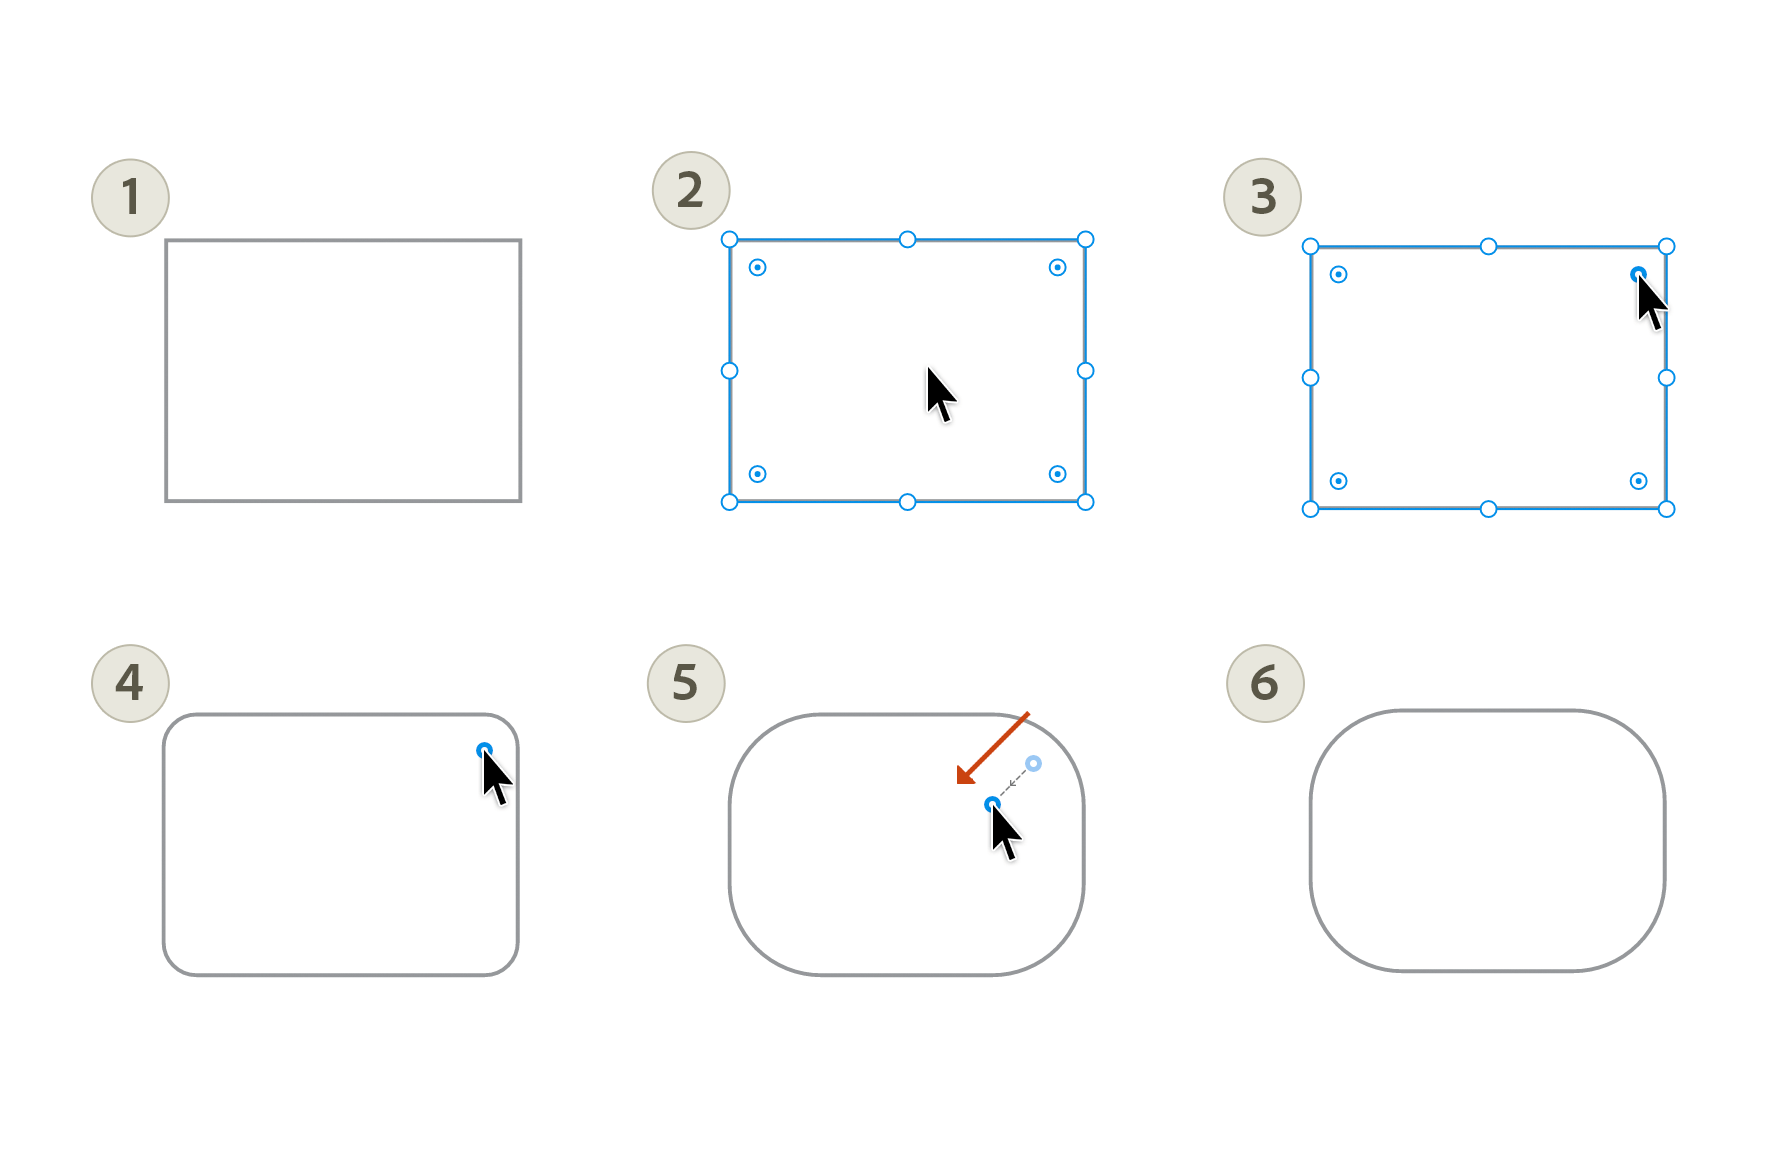 How To Draw A Parallelogram In Snap